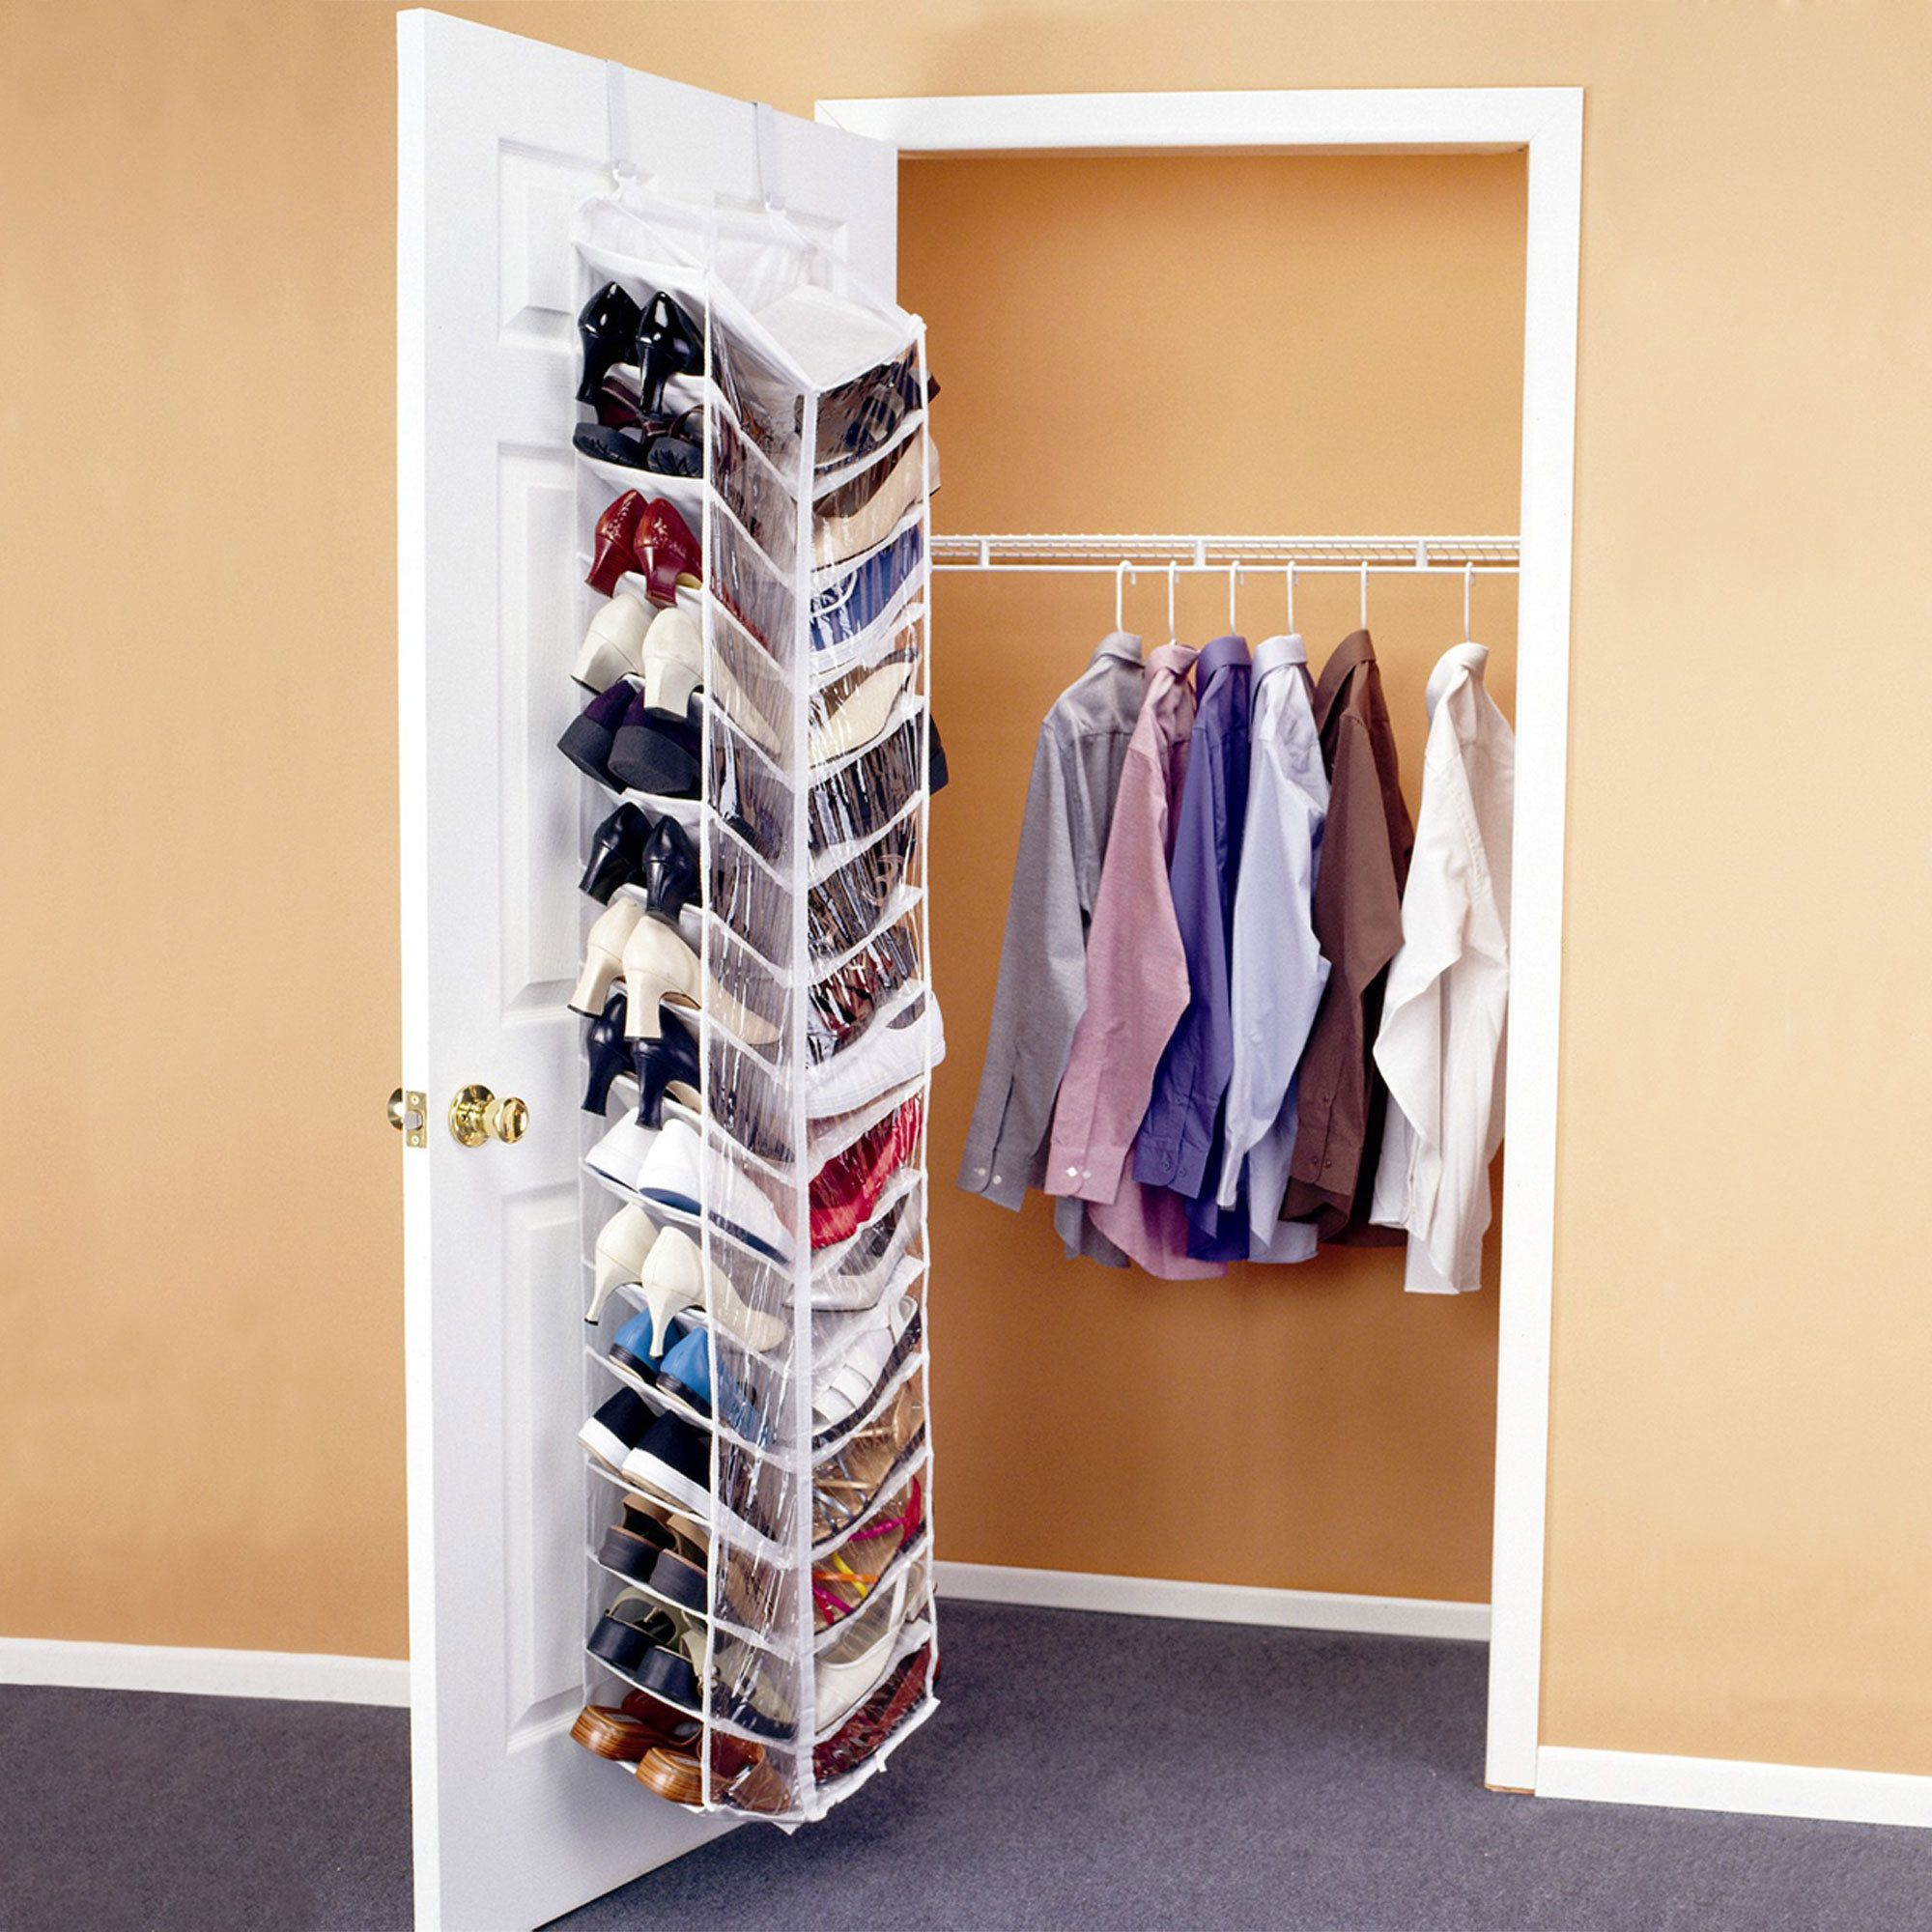 Trademark Shoes Away Hanging Shoe Organizer